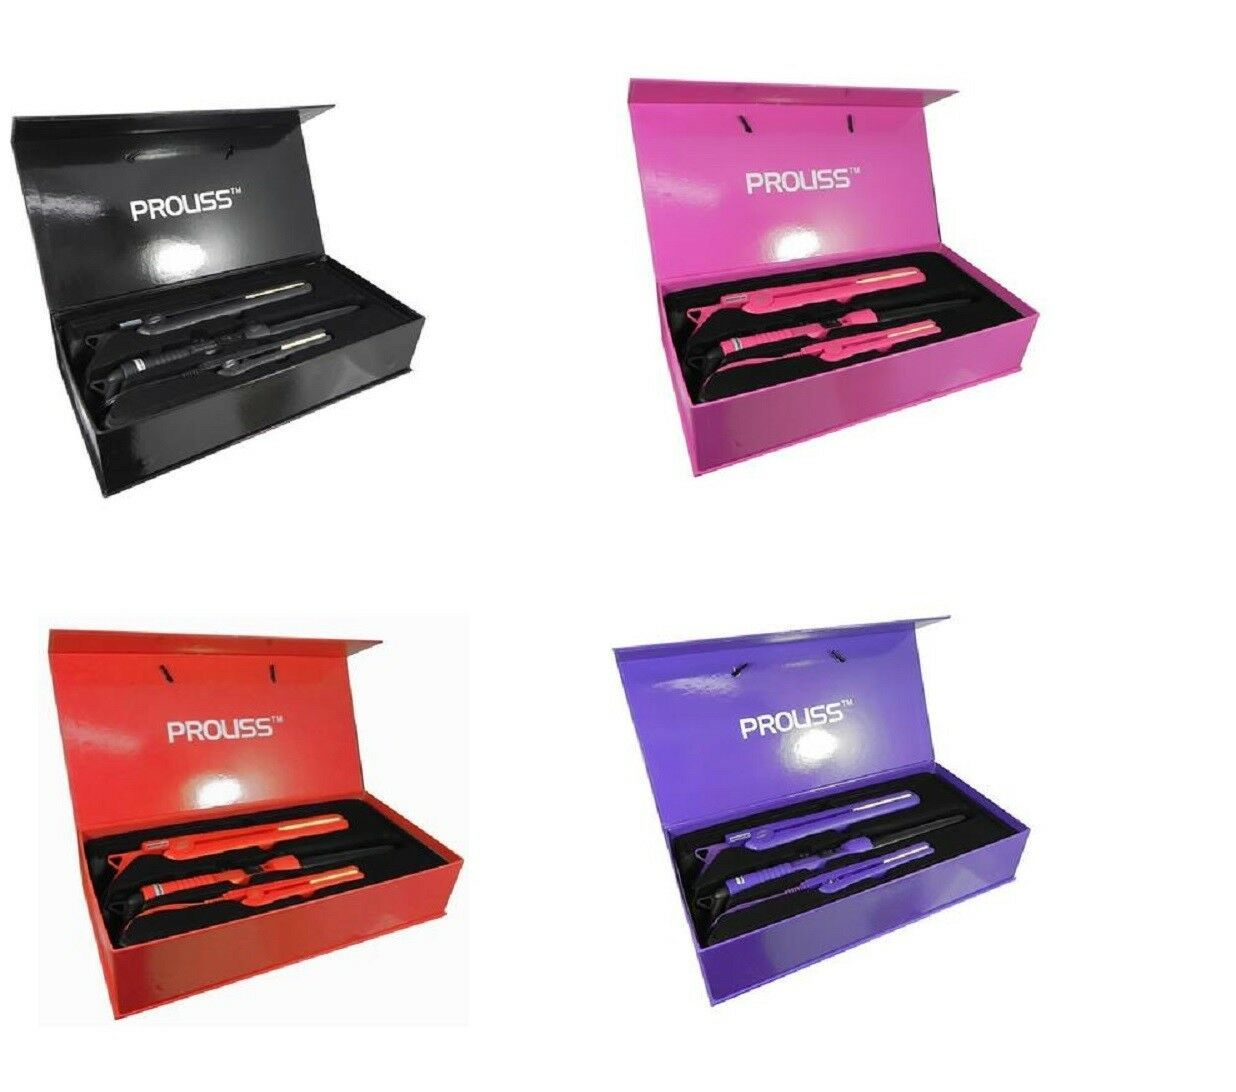 Primary image for Proliss Infusion Complete Full Set Hair Straightener + Curling Iron + Min Iron